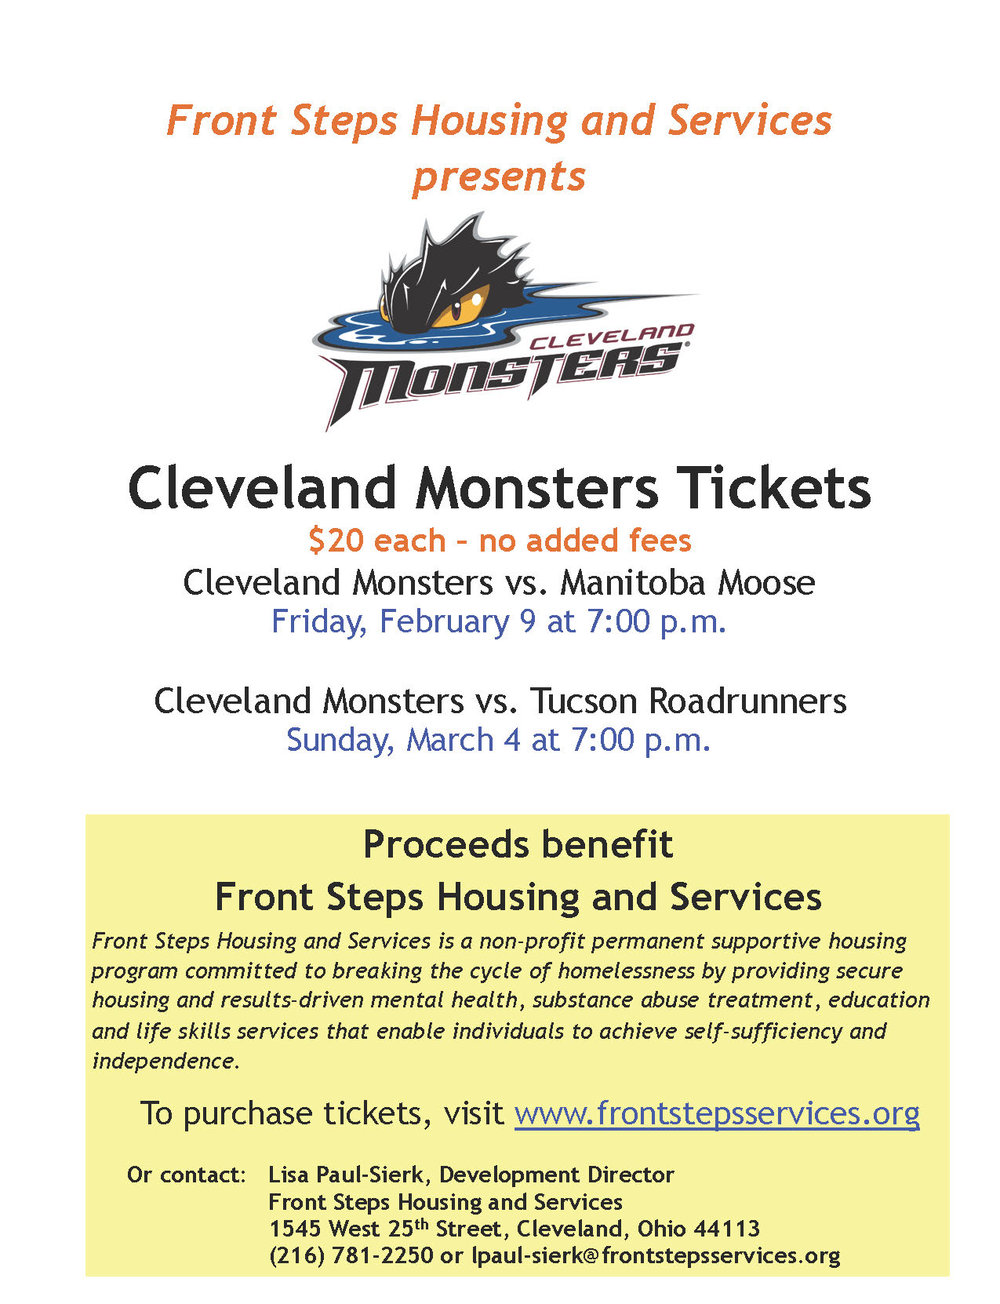 Front Steps Monsters Tickets 2018-3 3.jpg